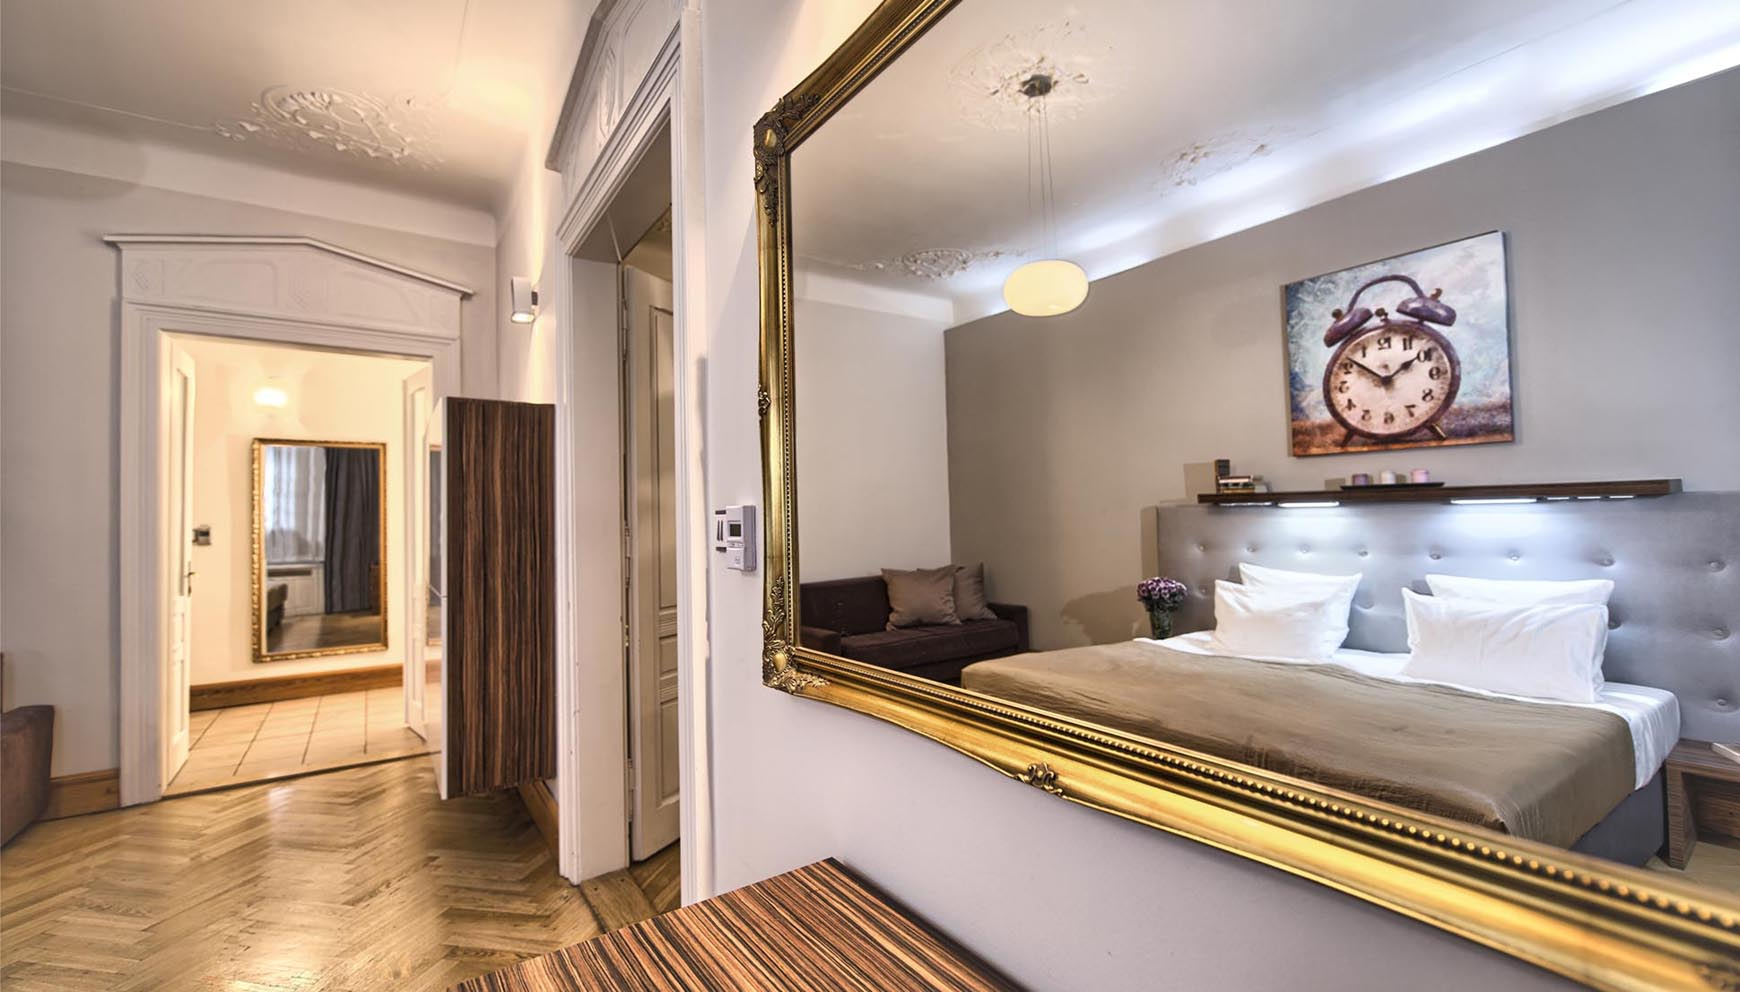 First Bedroom In A Two Bedroom Apartment In Residence Brehova